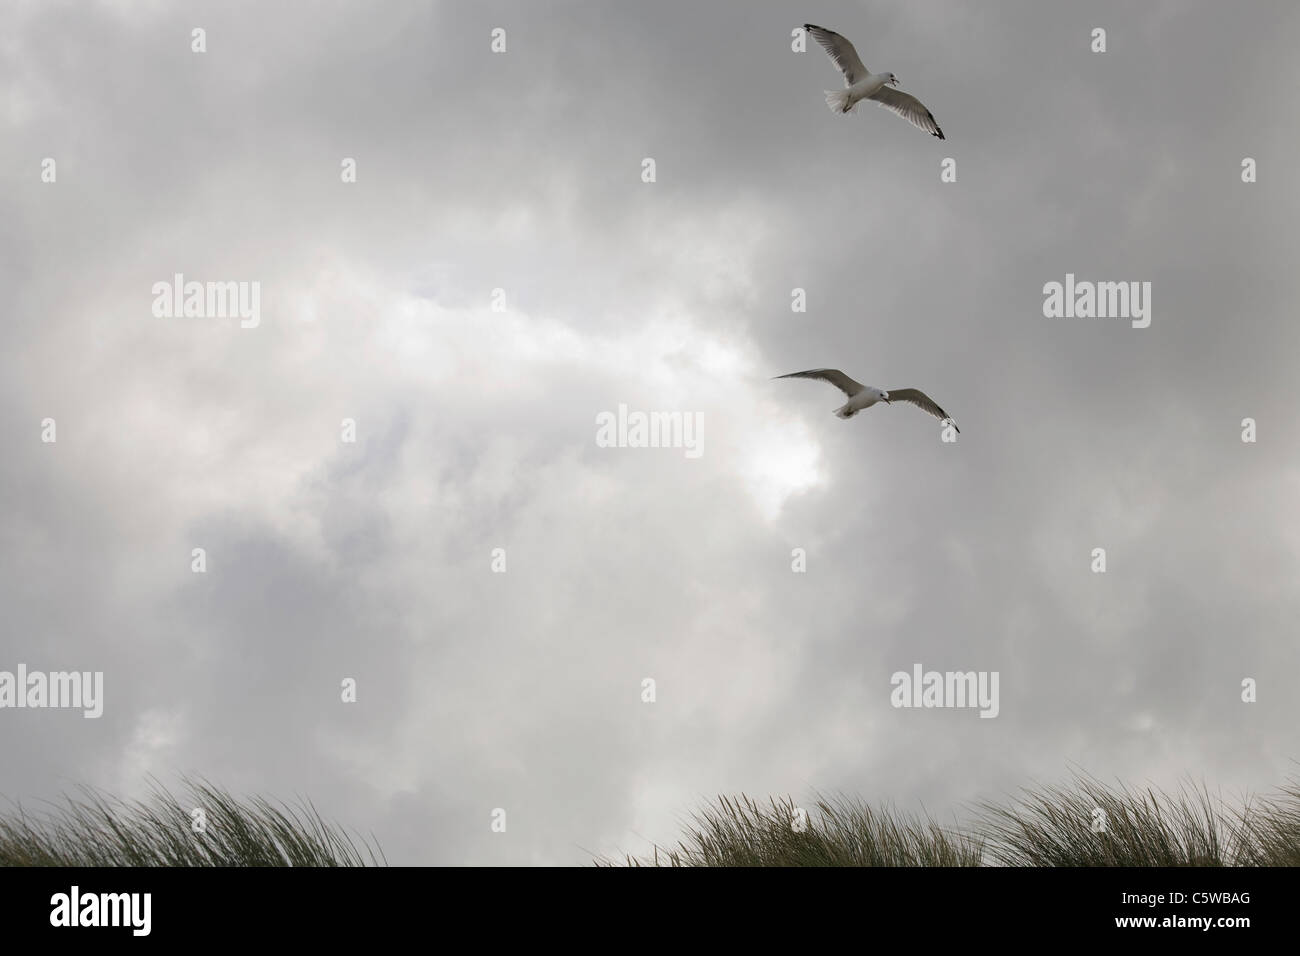 Germany, Schleswig Holstein, Amrum, Seagulls over Beach - Stock Image